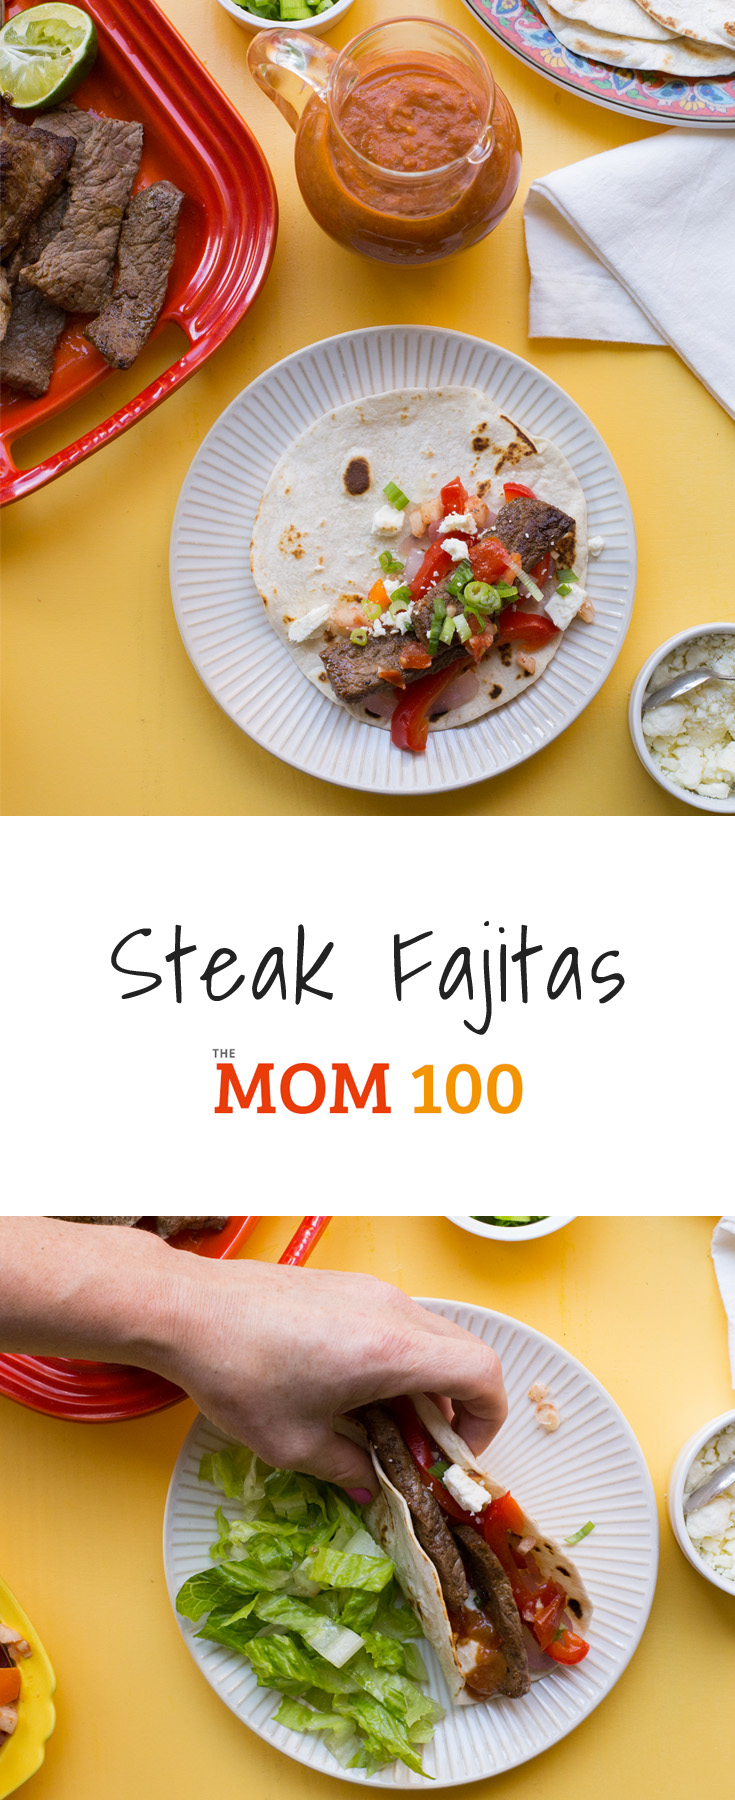 Steak Fajitas are surprisingly easy to make at home, truly, especially if you use a pre-made Fajita seasoning, or some other Mexican seasoning blend. This dinner will instantly make you feel like you are in a good Mexican joint.